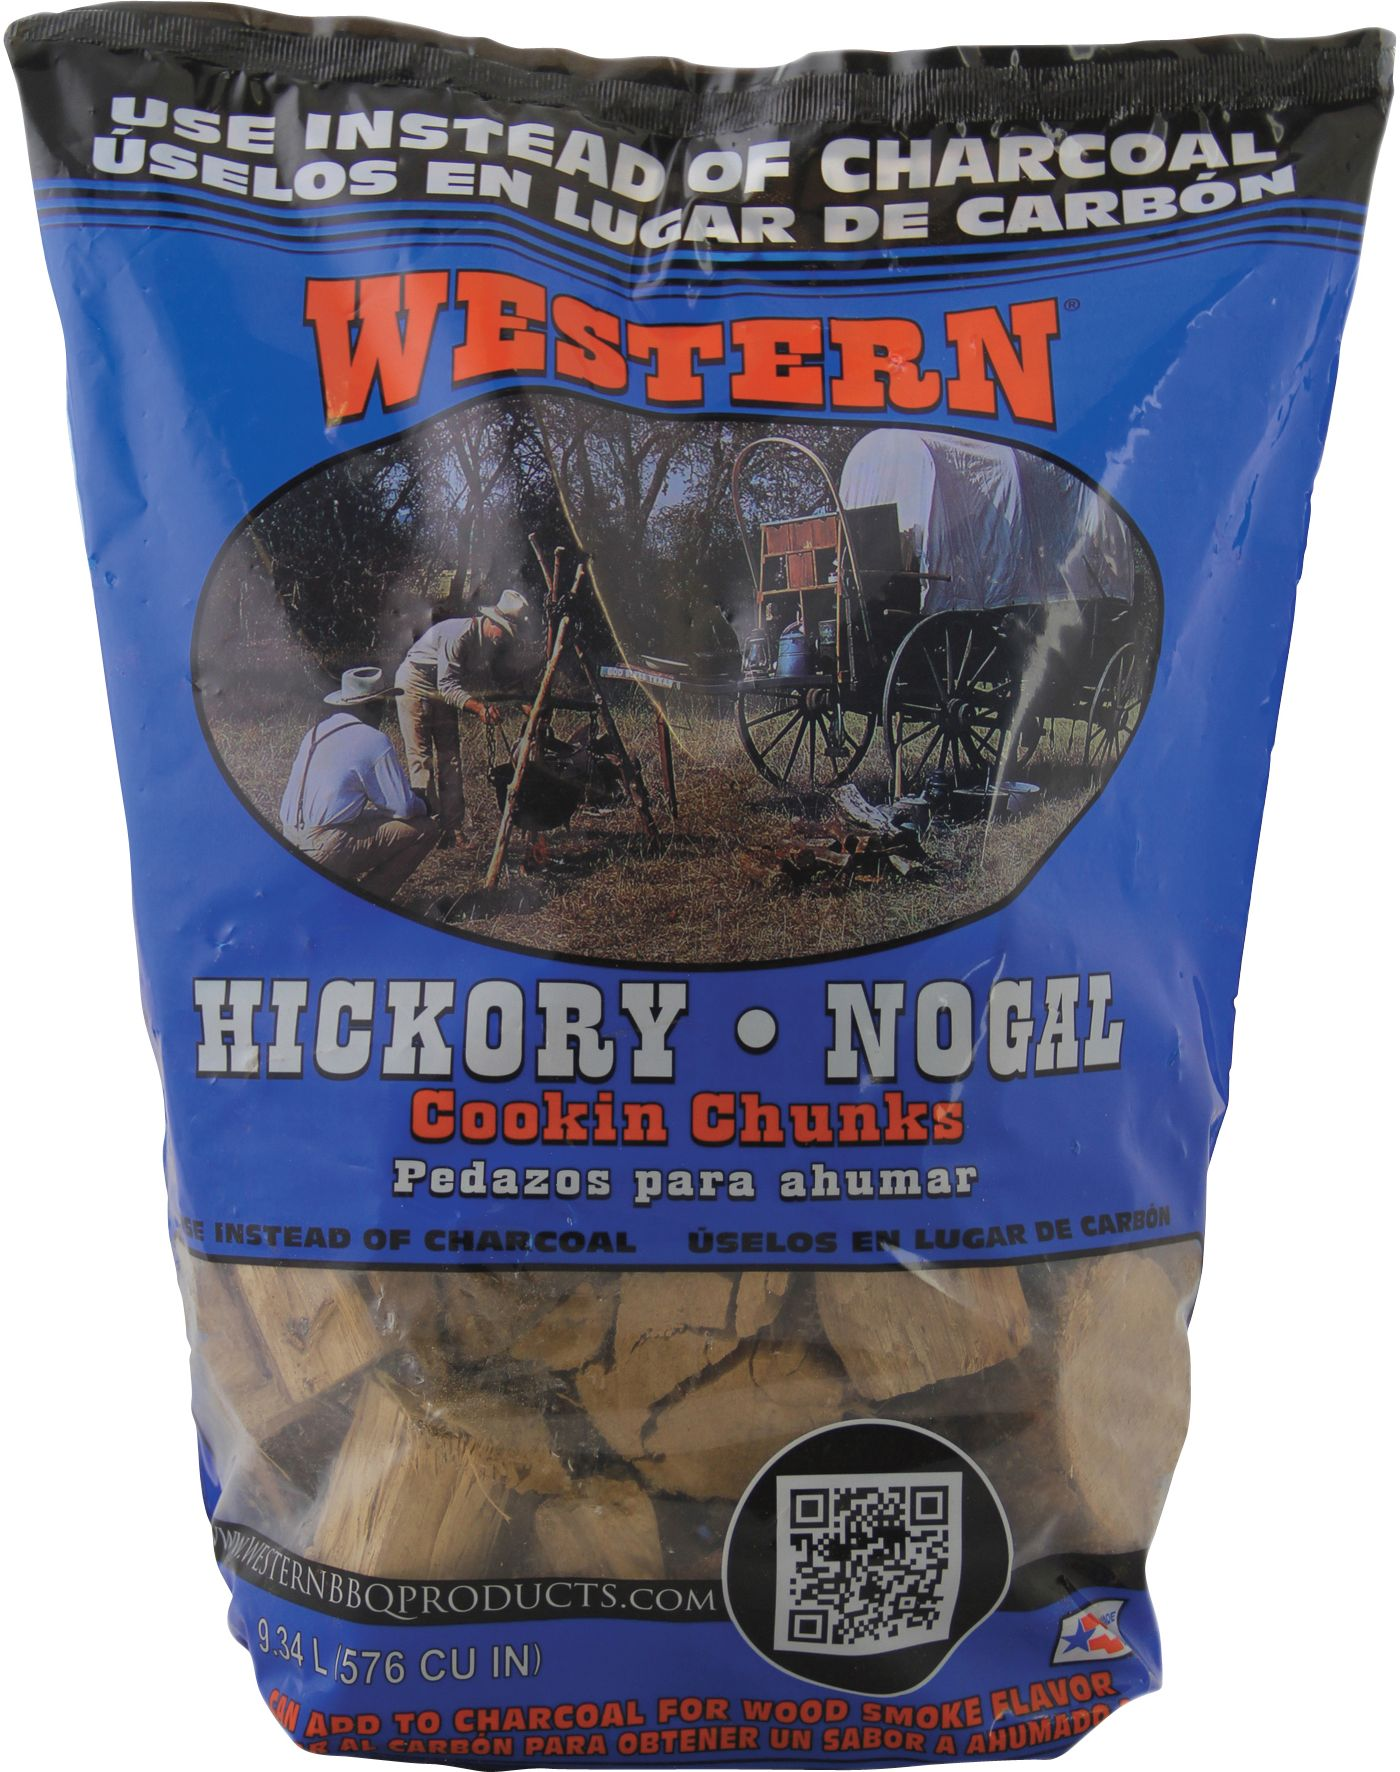 WESTERN BBQ Hickory Cooking Chunks